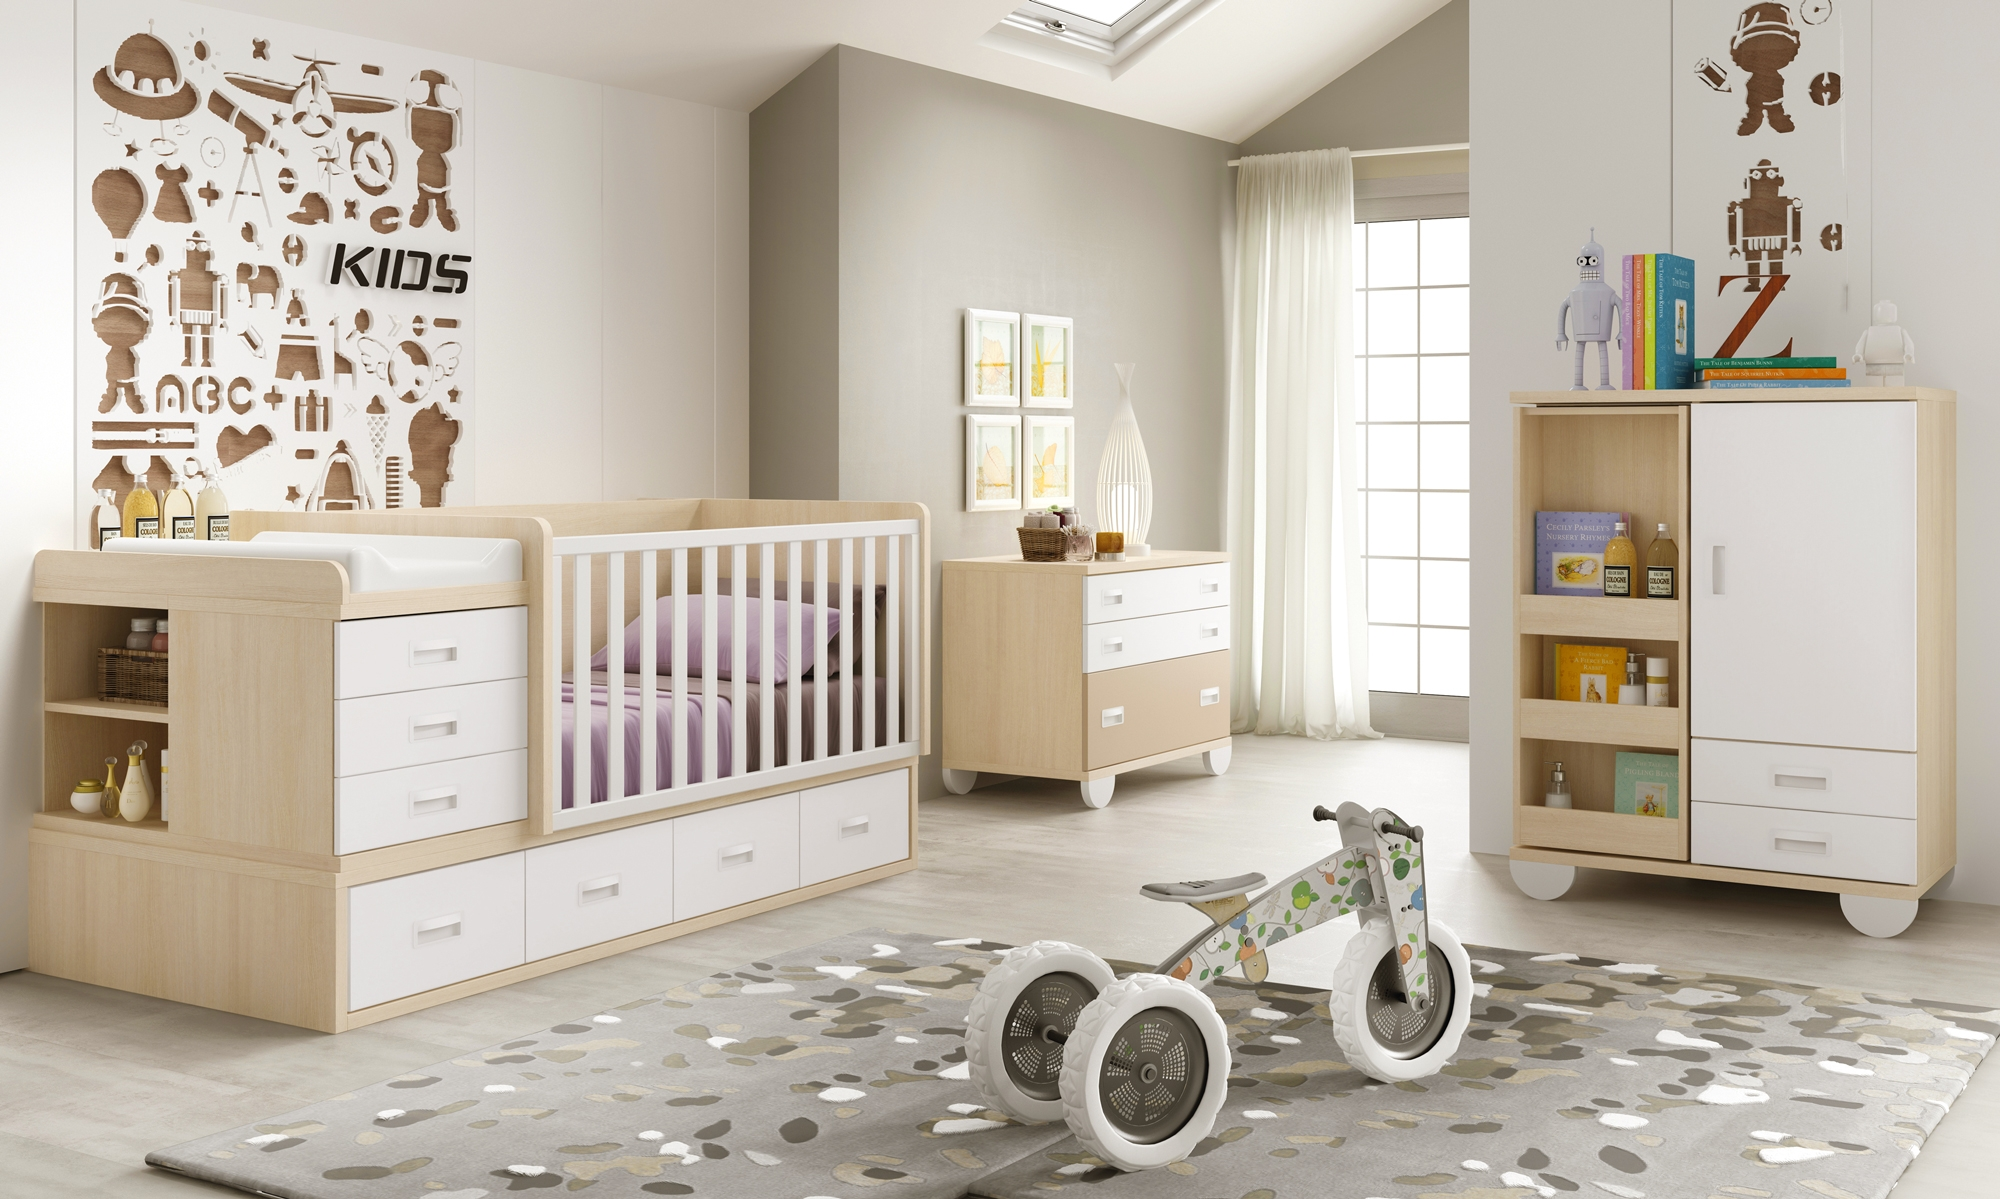 chambre bebe evolutif ikea avec des id es int ressantes pour la conception de la. Black Bedroom Furniture Sets. Home Design Ideas